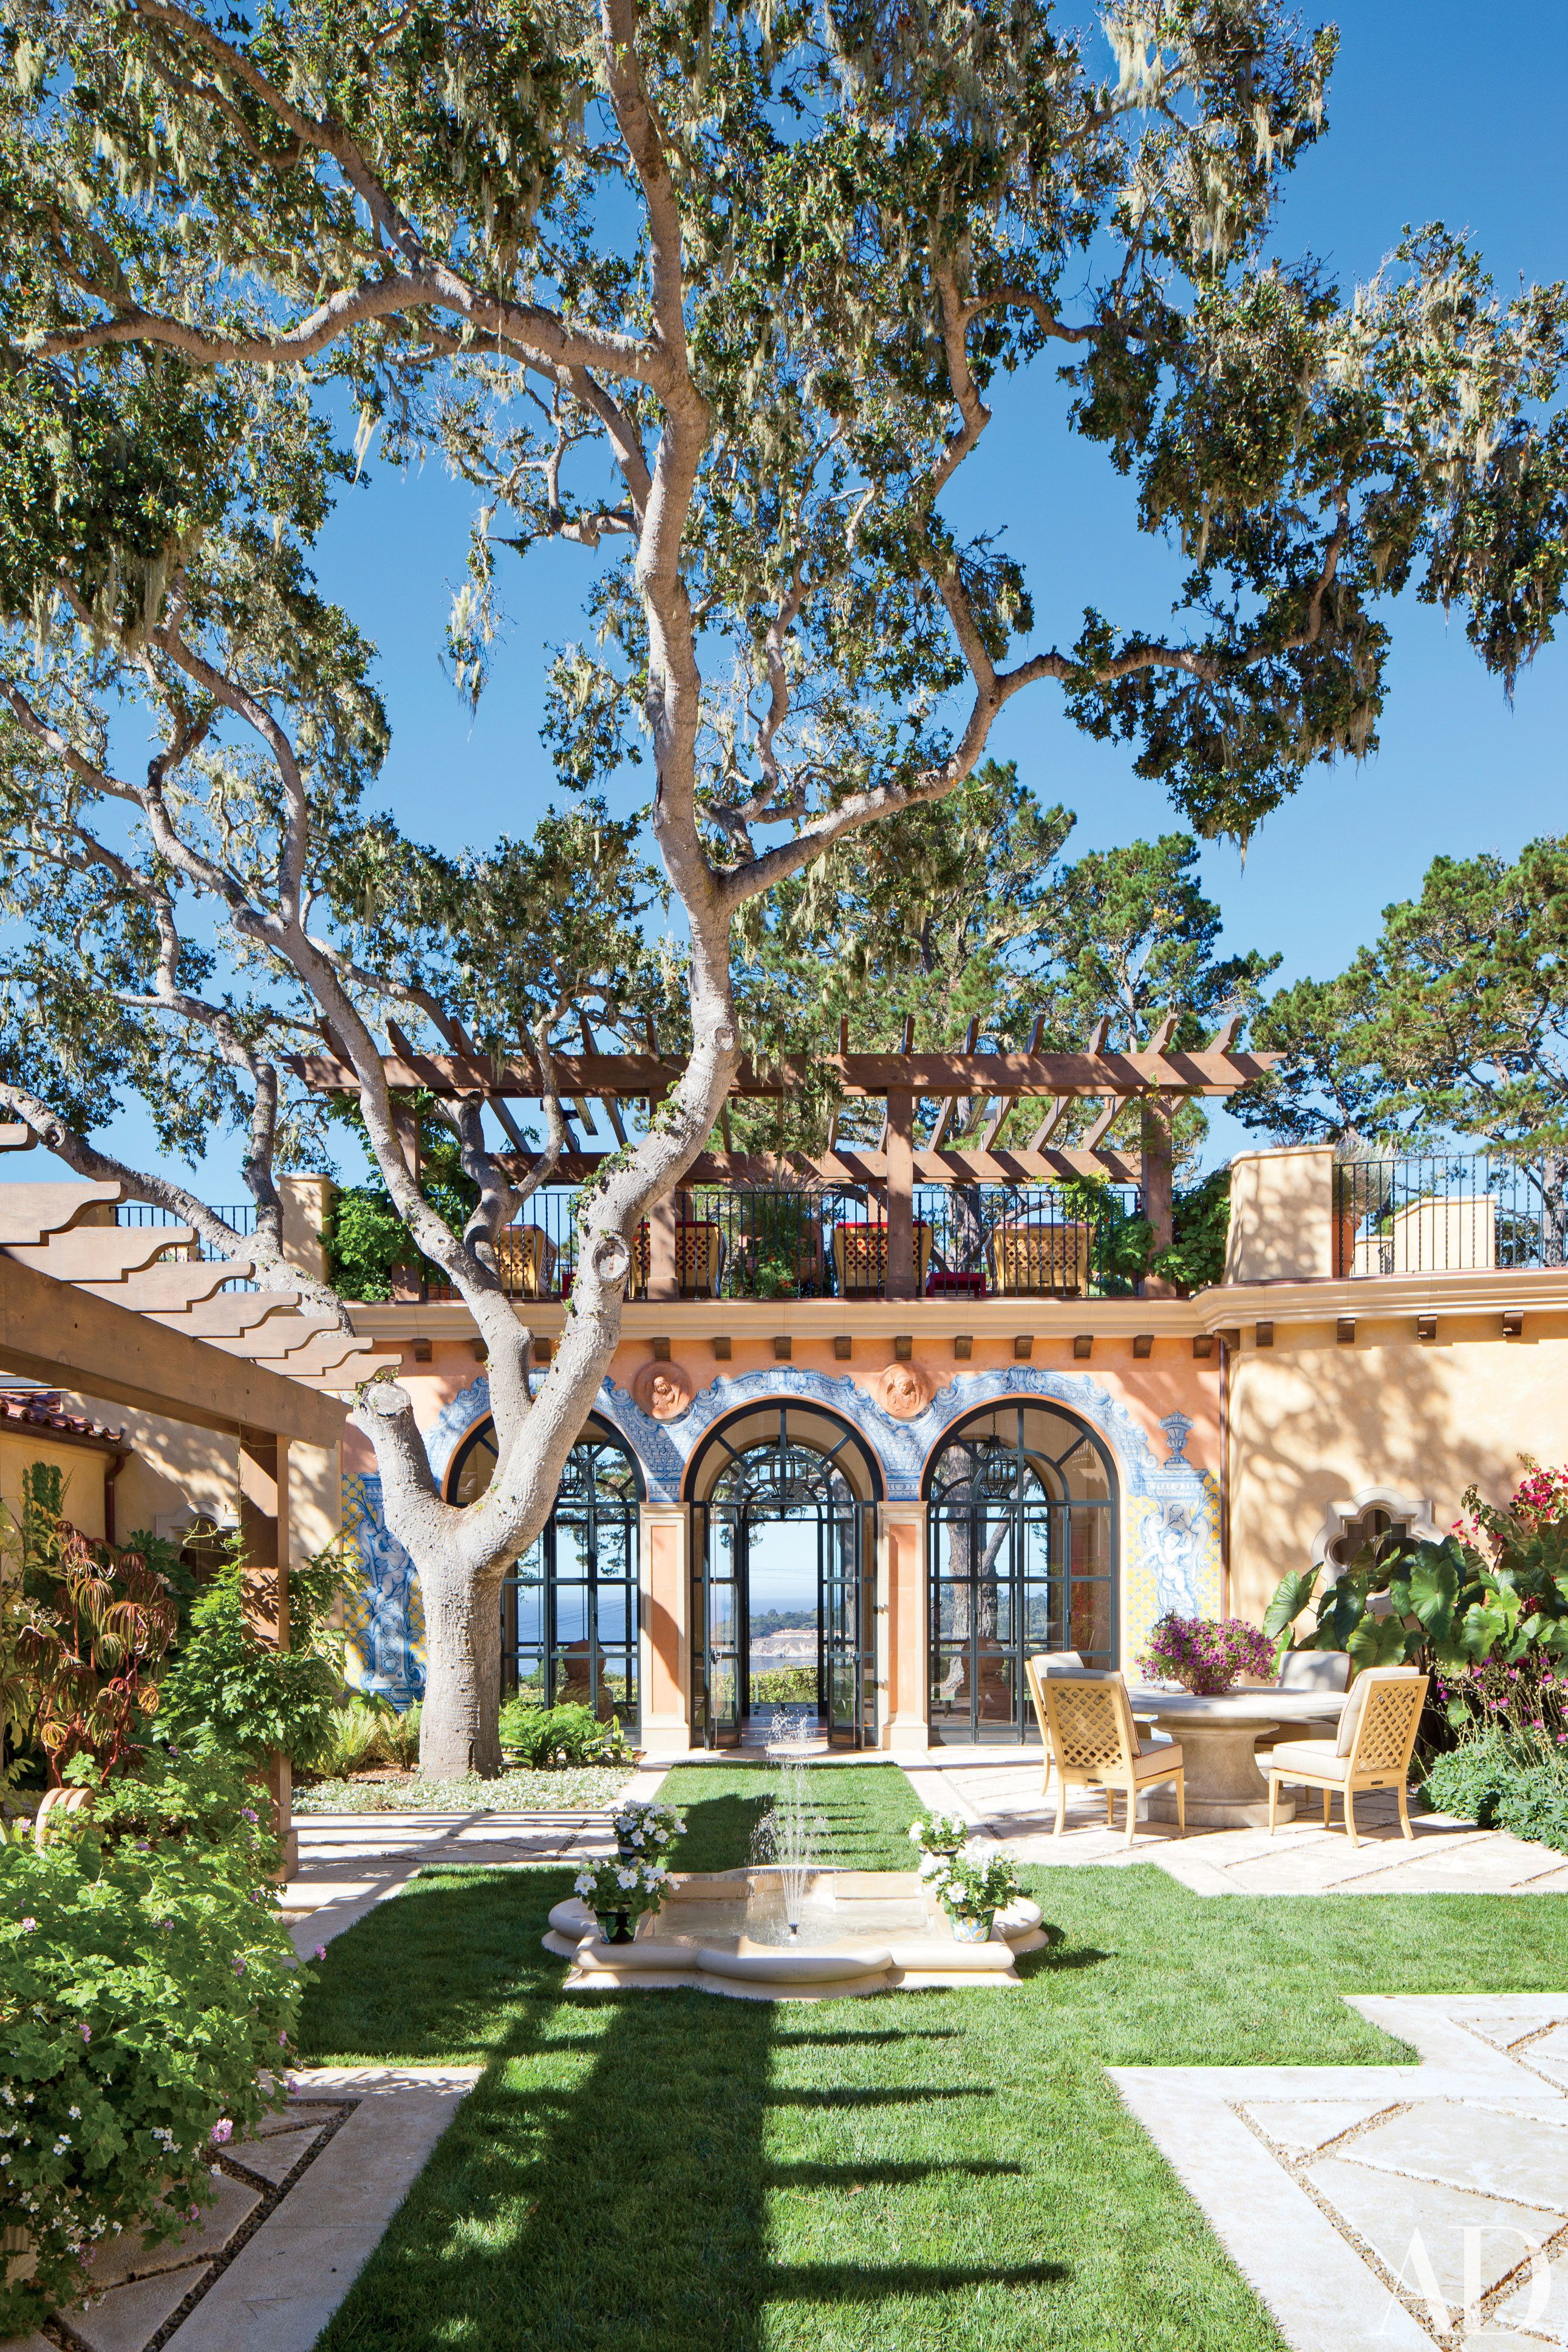 11 Chic Arch Designs That Add Timeless Elegance Spanish Style Homes Colonial Style Homes Spanish Courtyard